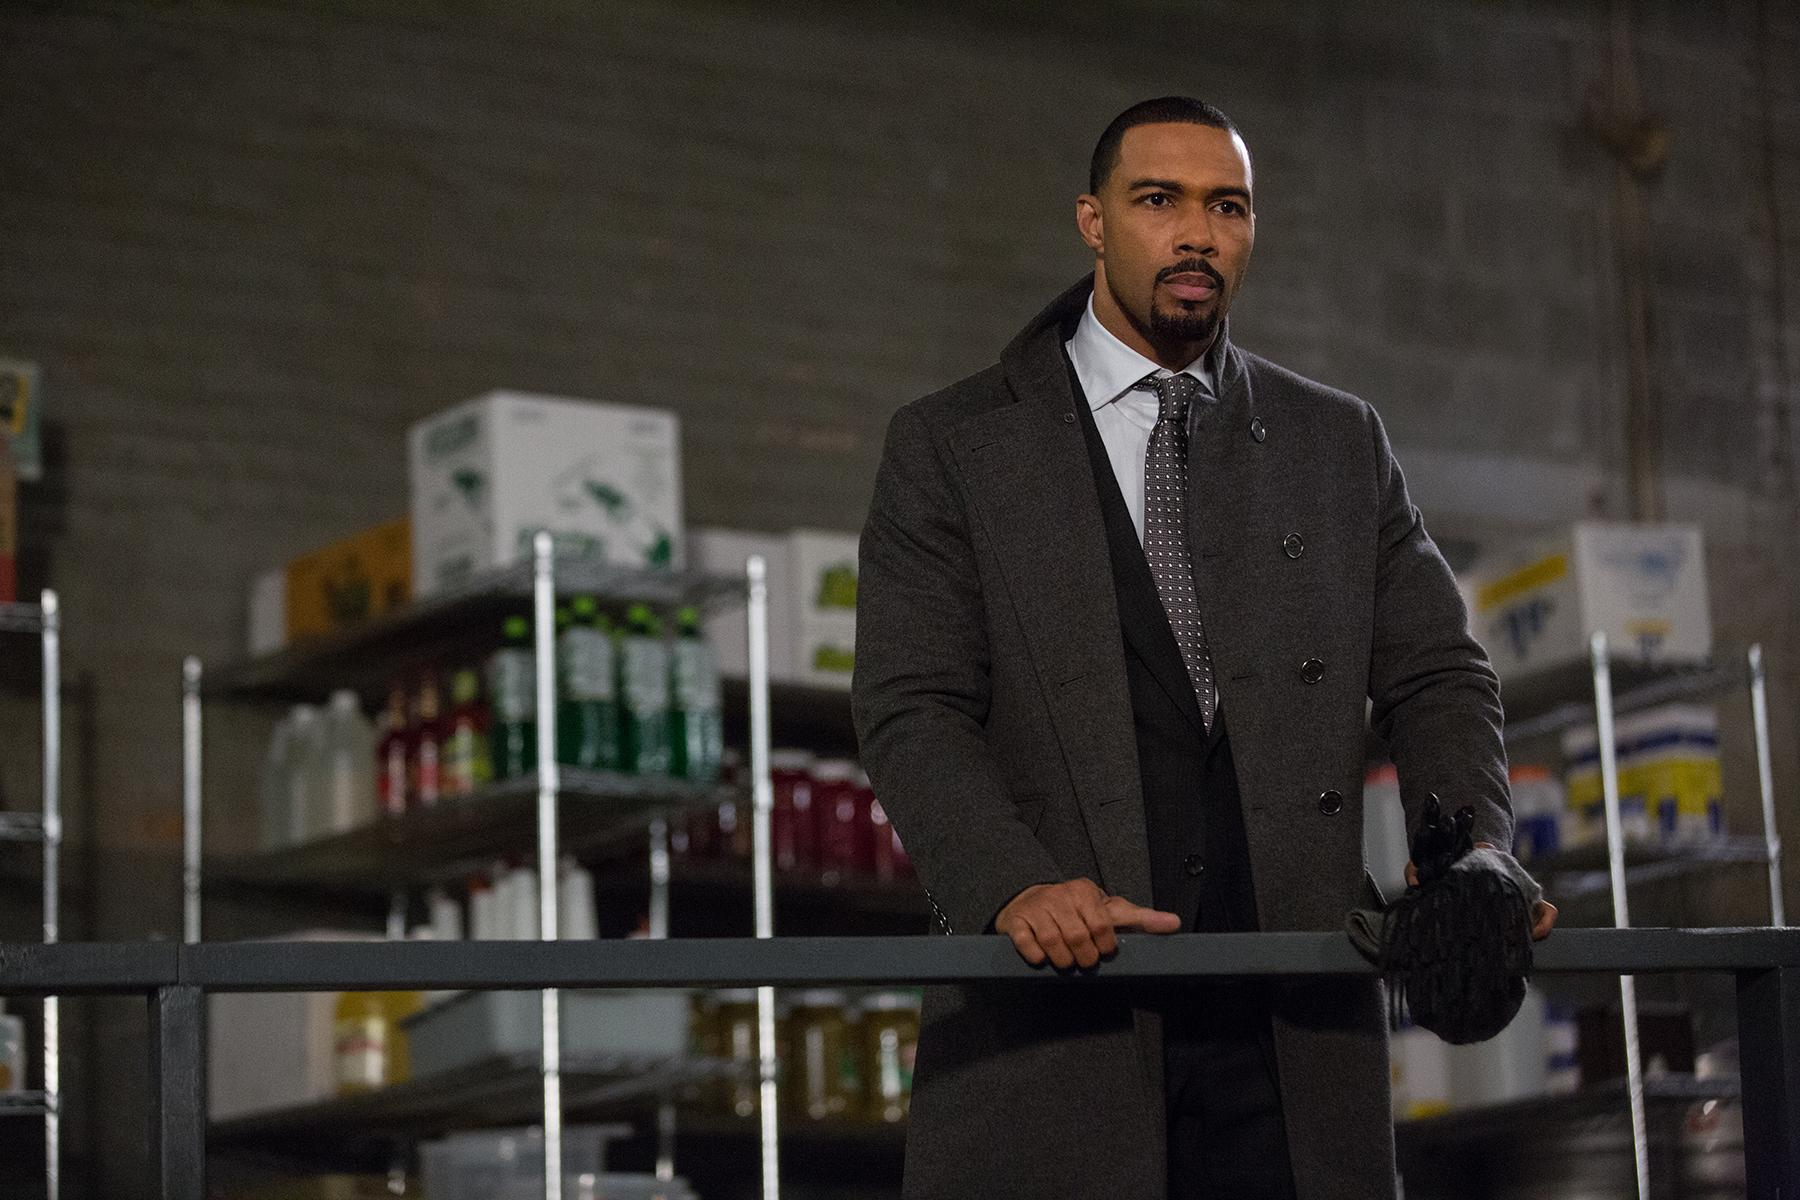 Omari Hardwick (as James 'Ghost' St